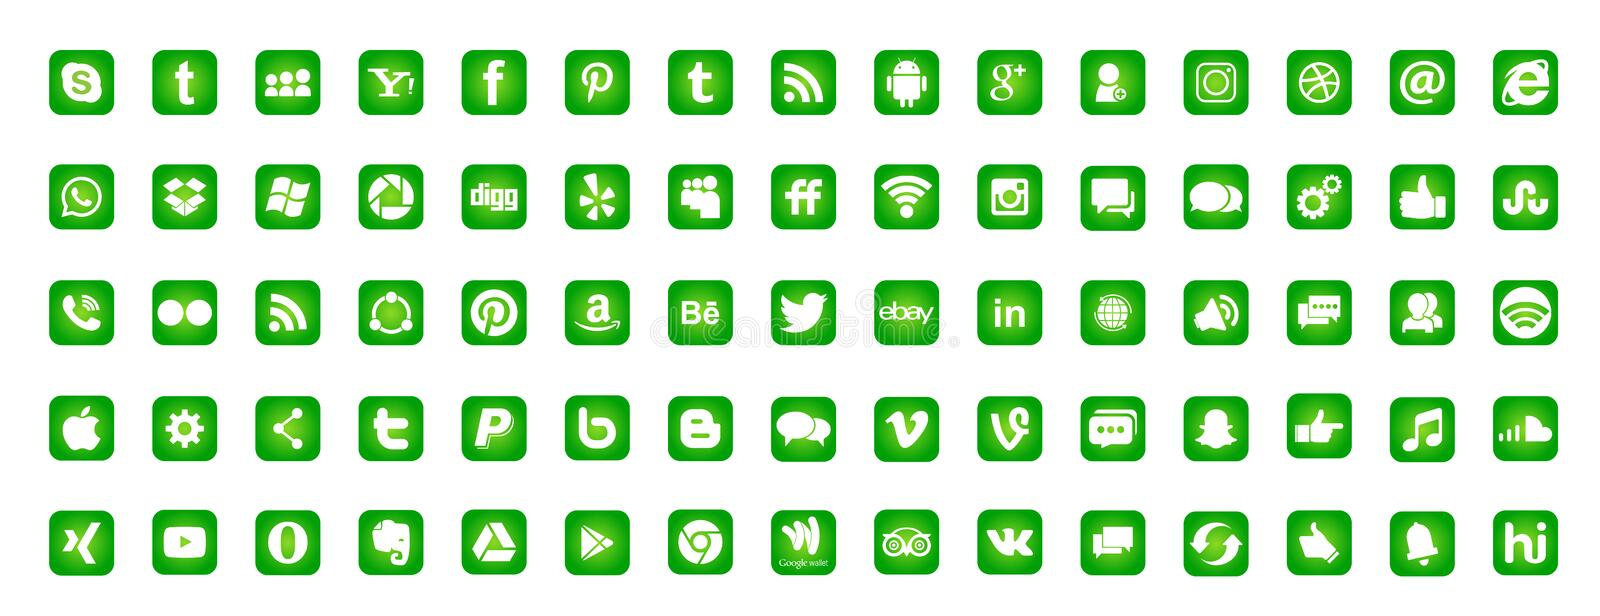 Set of popular social media logos icons Instagram Facebook Twitter Youtube WhatsApp LinkedIn Pinterest Blogd on white background vector illustration